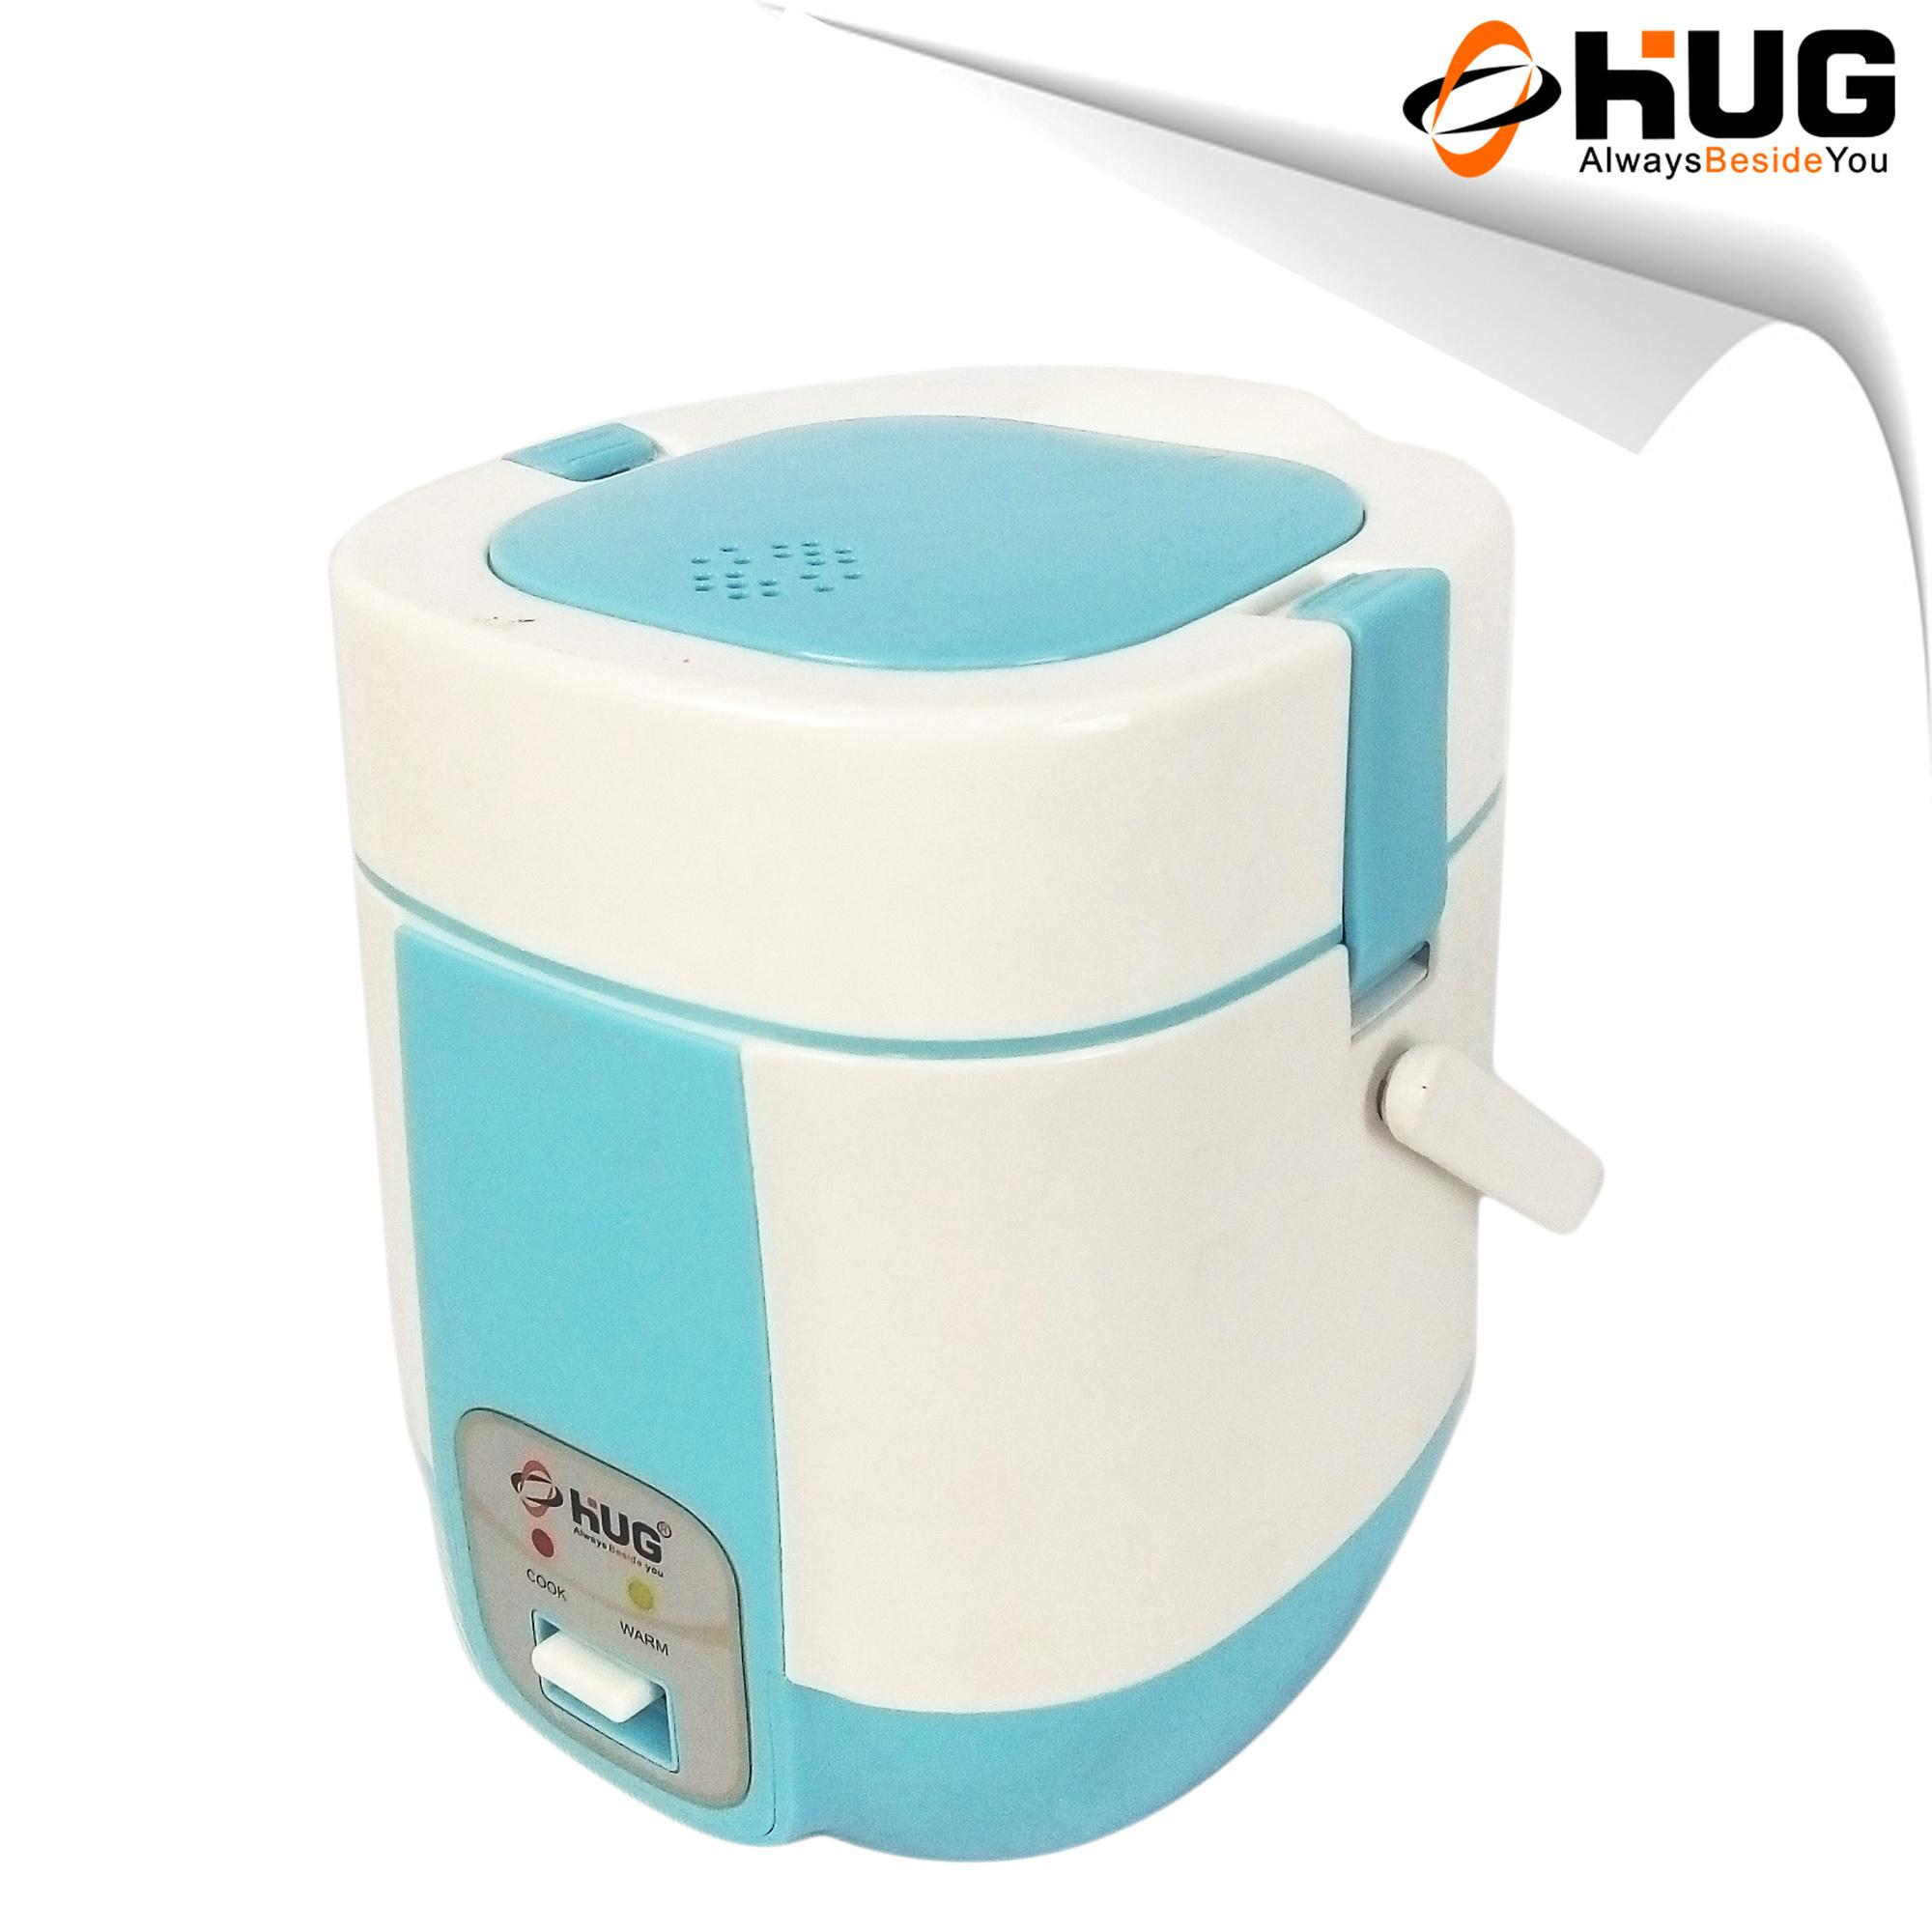 Rice Cooker for sale - Rice Steamer prices, brands & review in ...